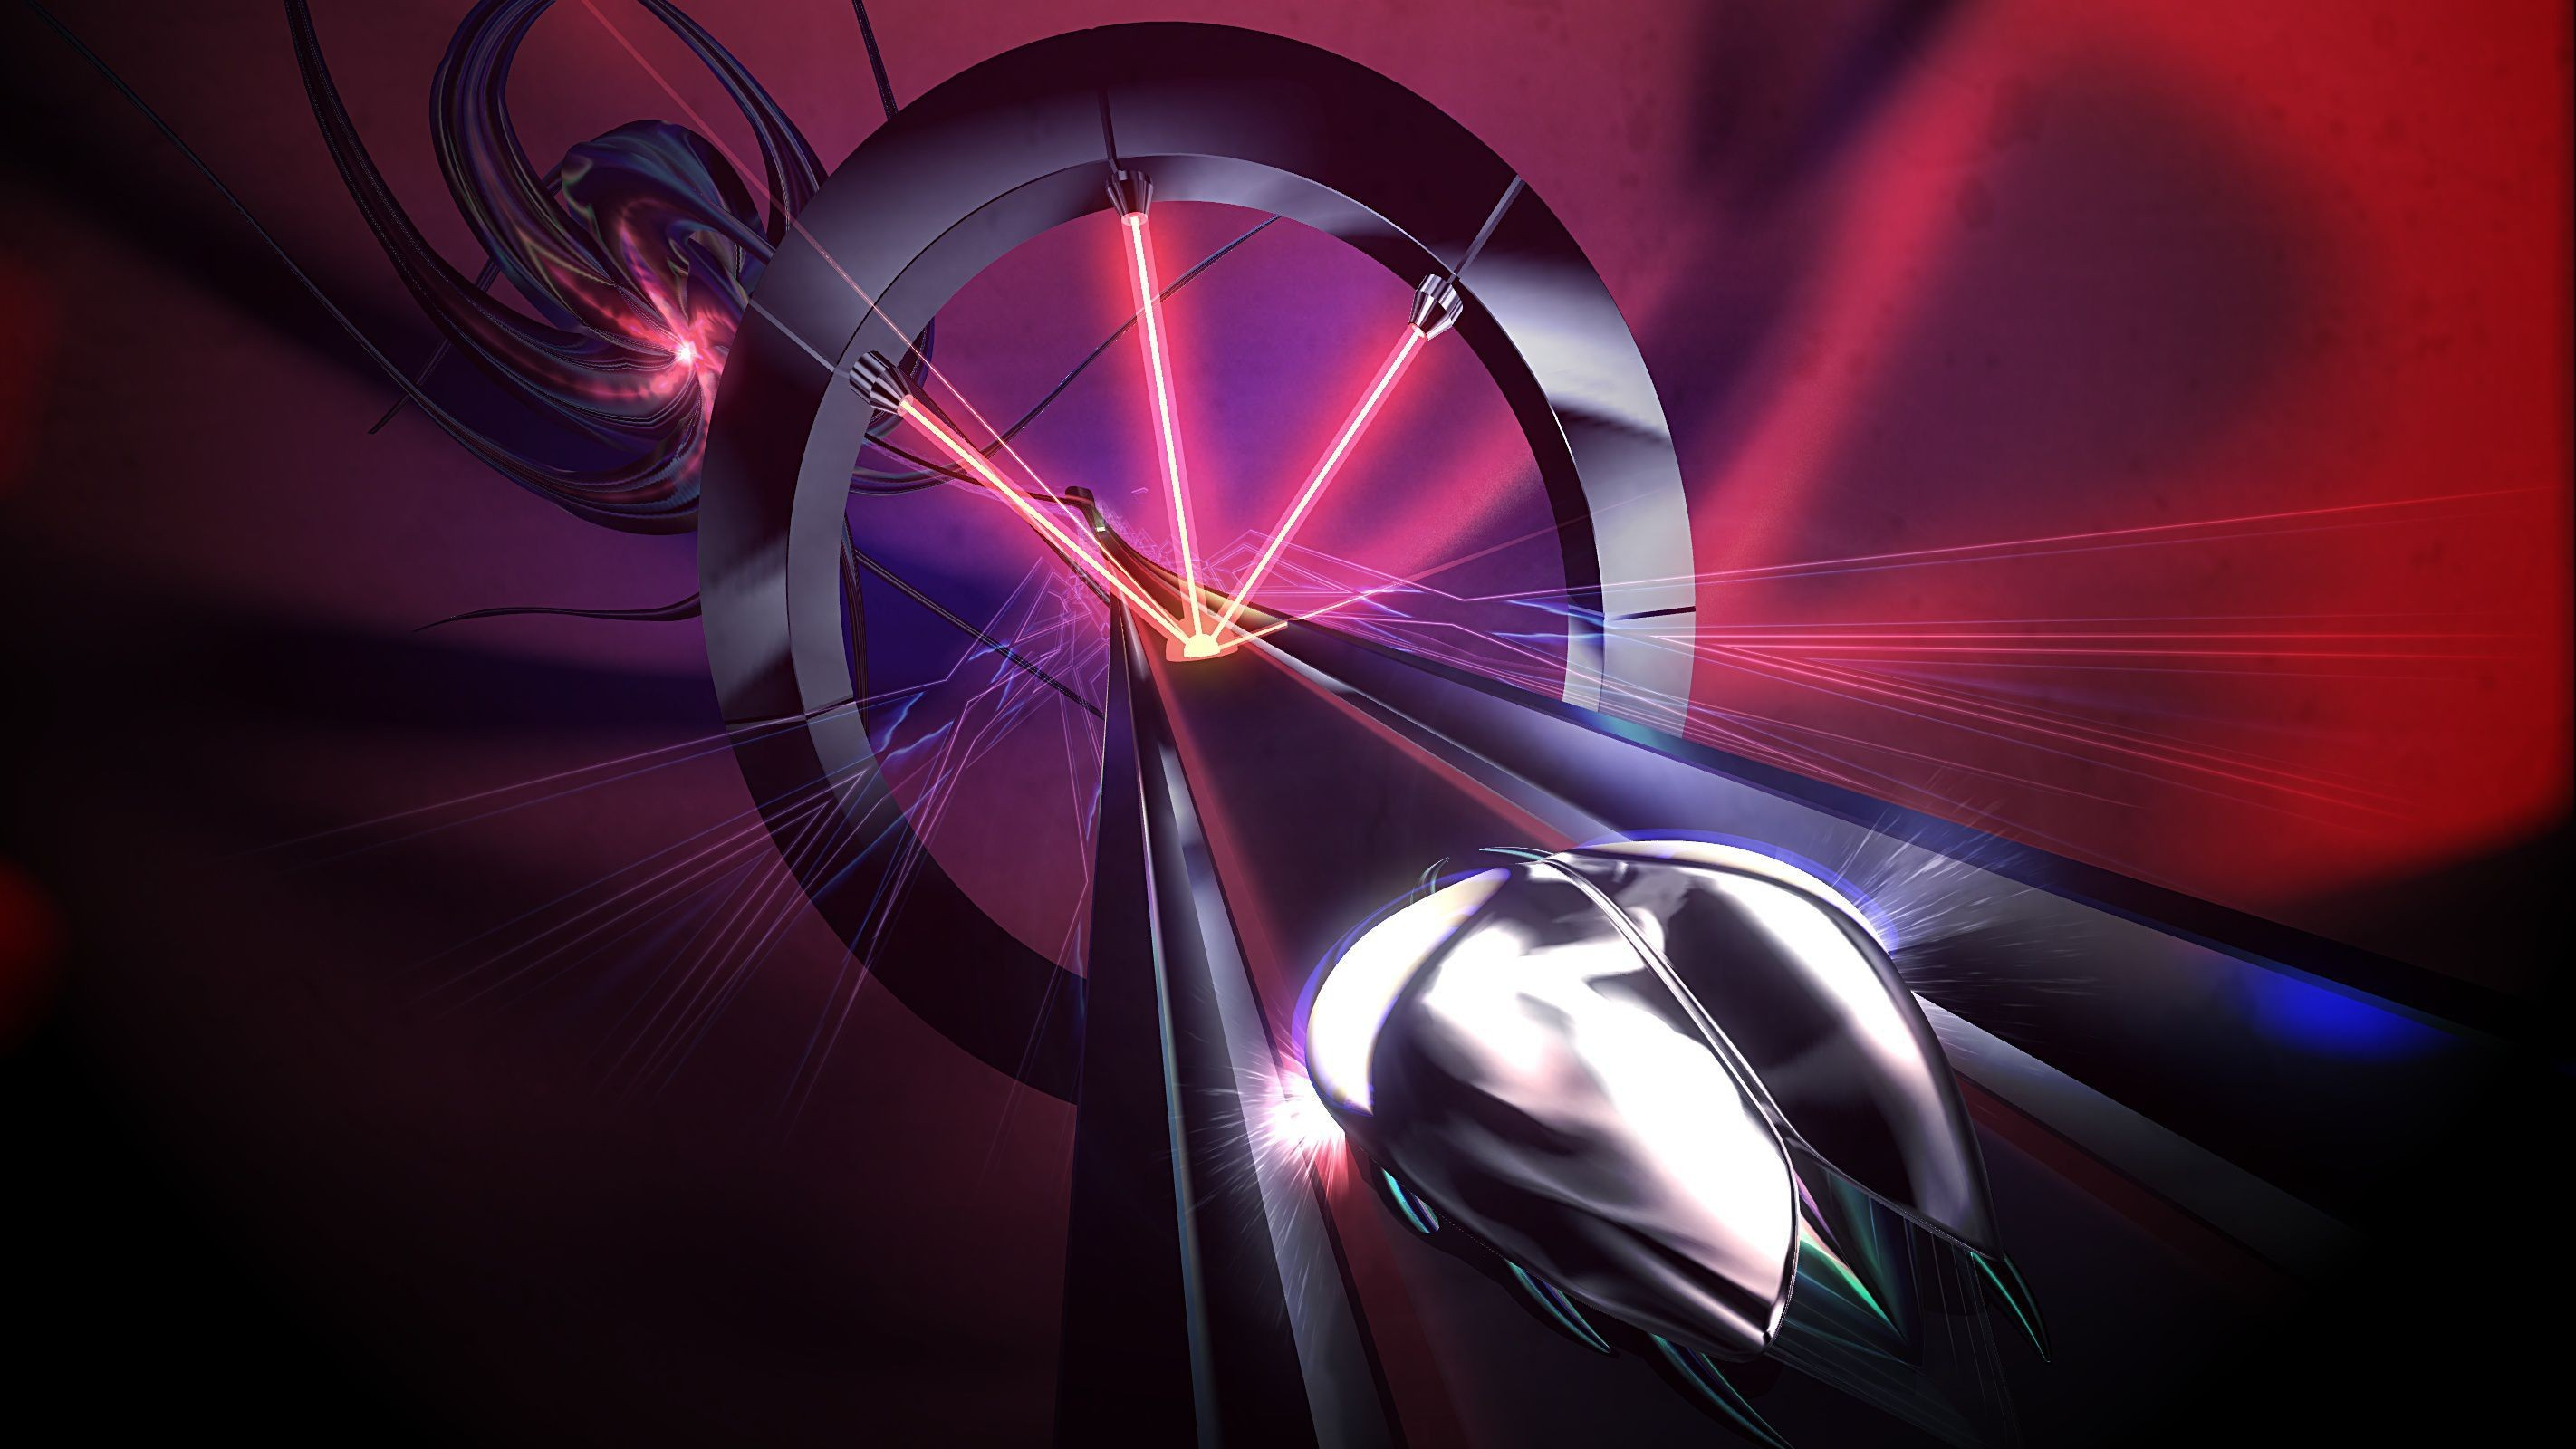 Deep Quotes Wallpapers Wallpaper Thumper Rhythm Hell Vr Ps Vr Ps4 Games 12359